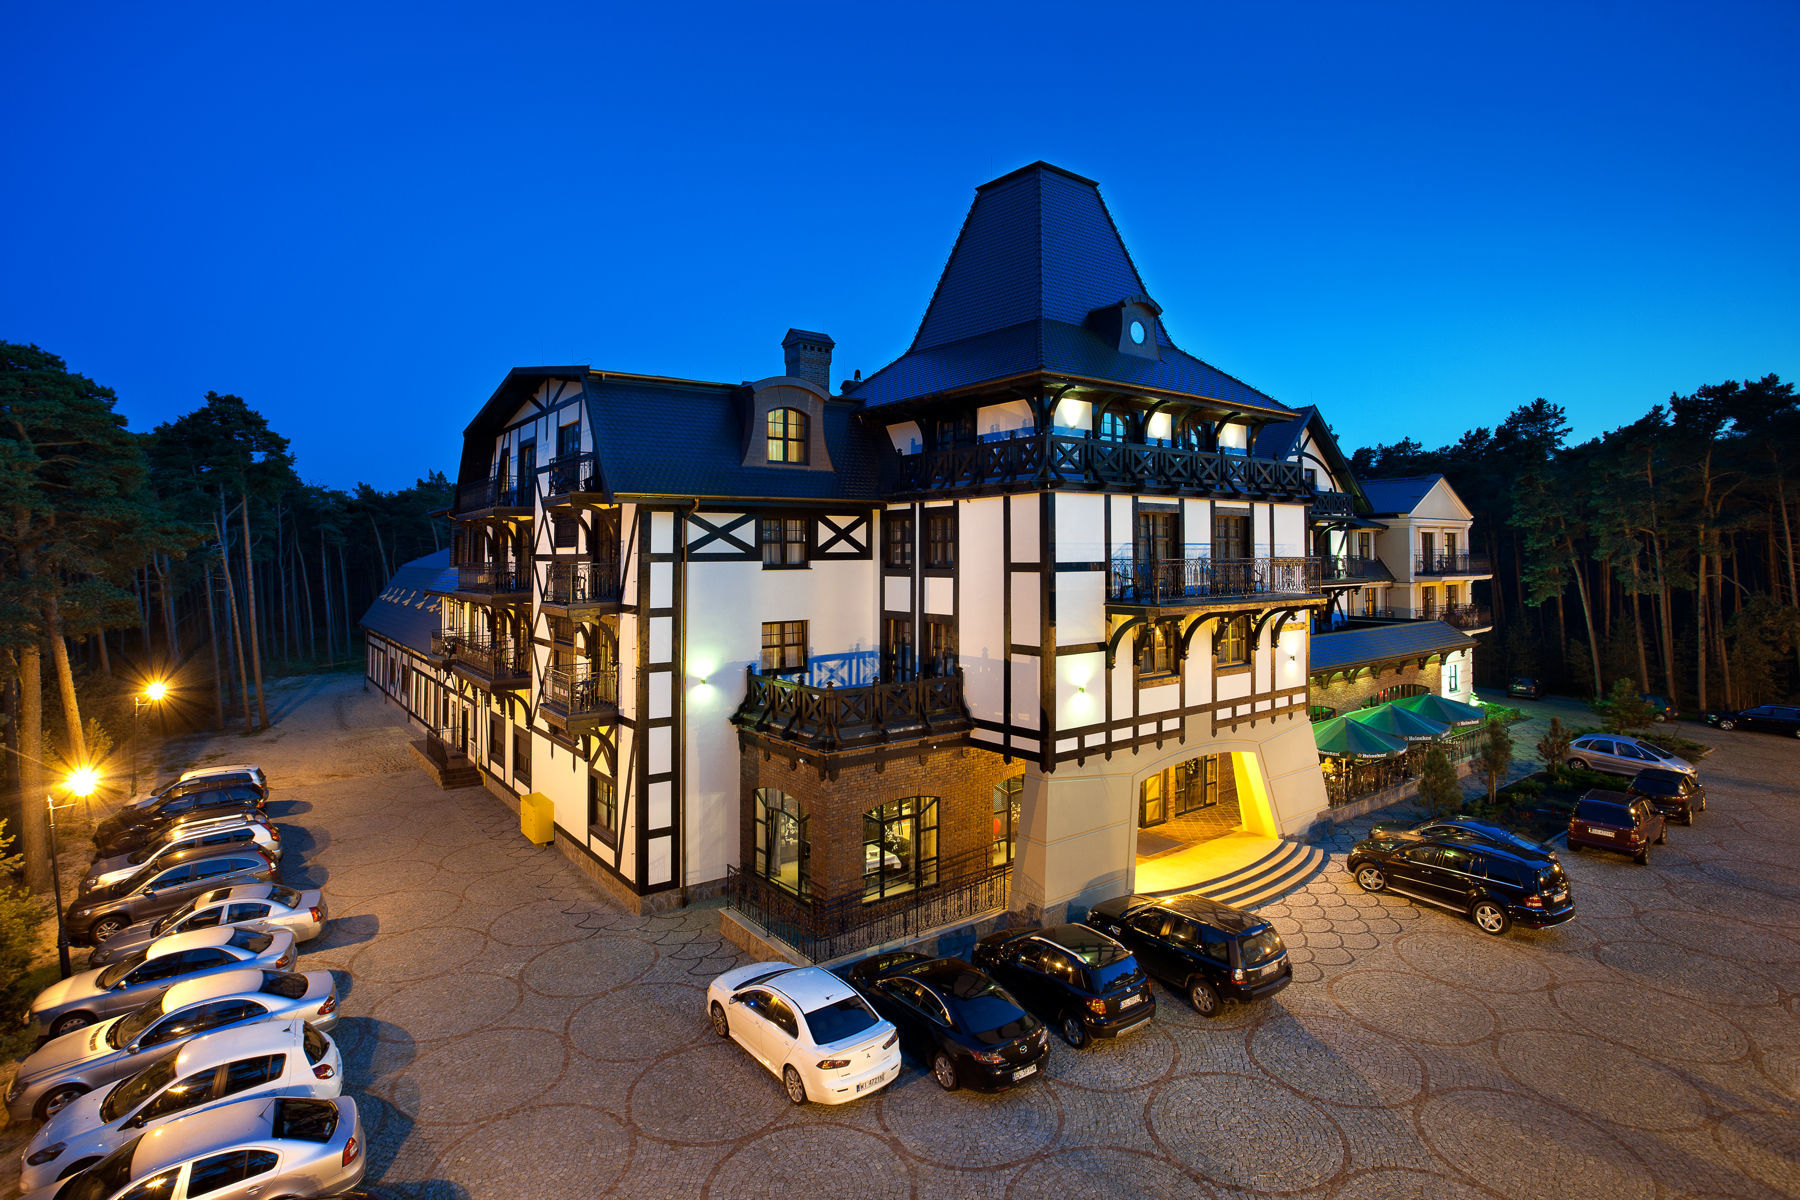 Hotel royal baltic 4 luxury boutique ustka for Luxury boutique